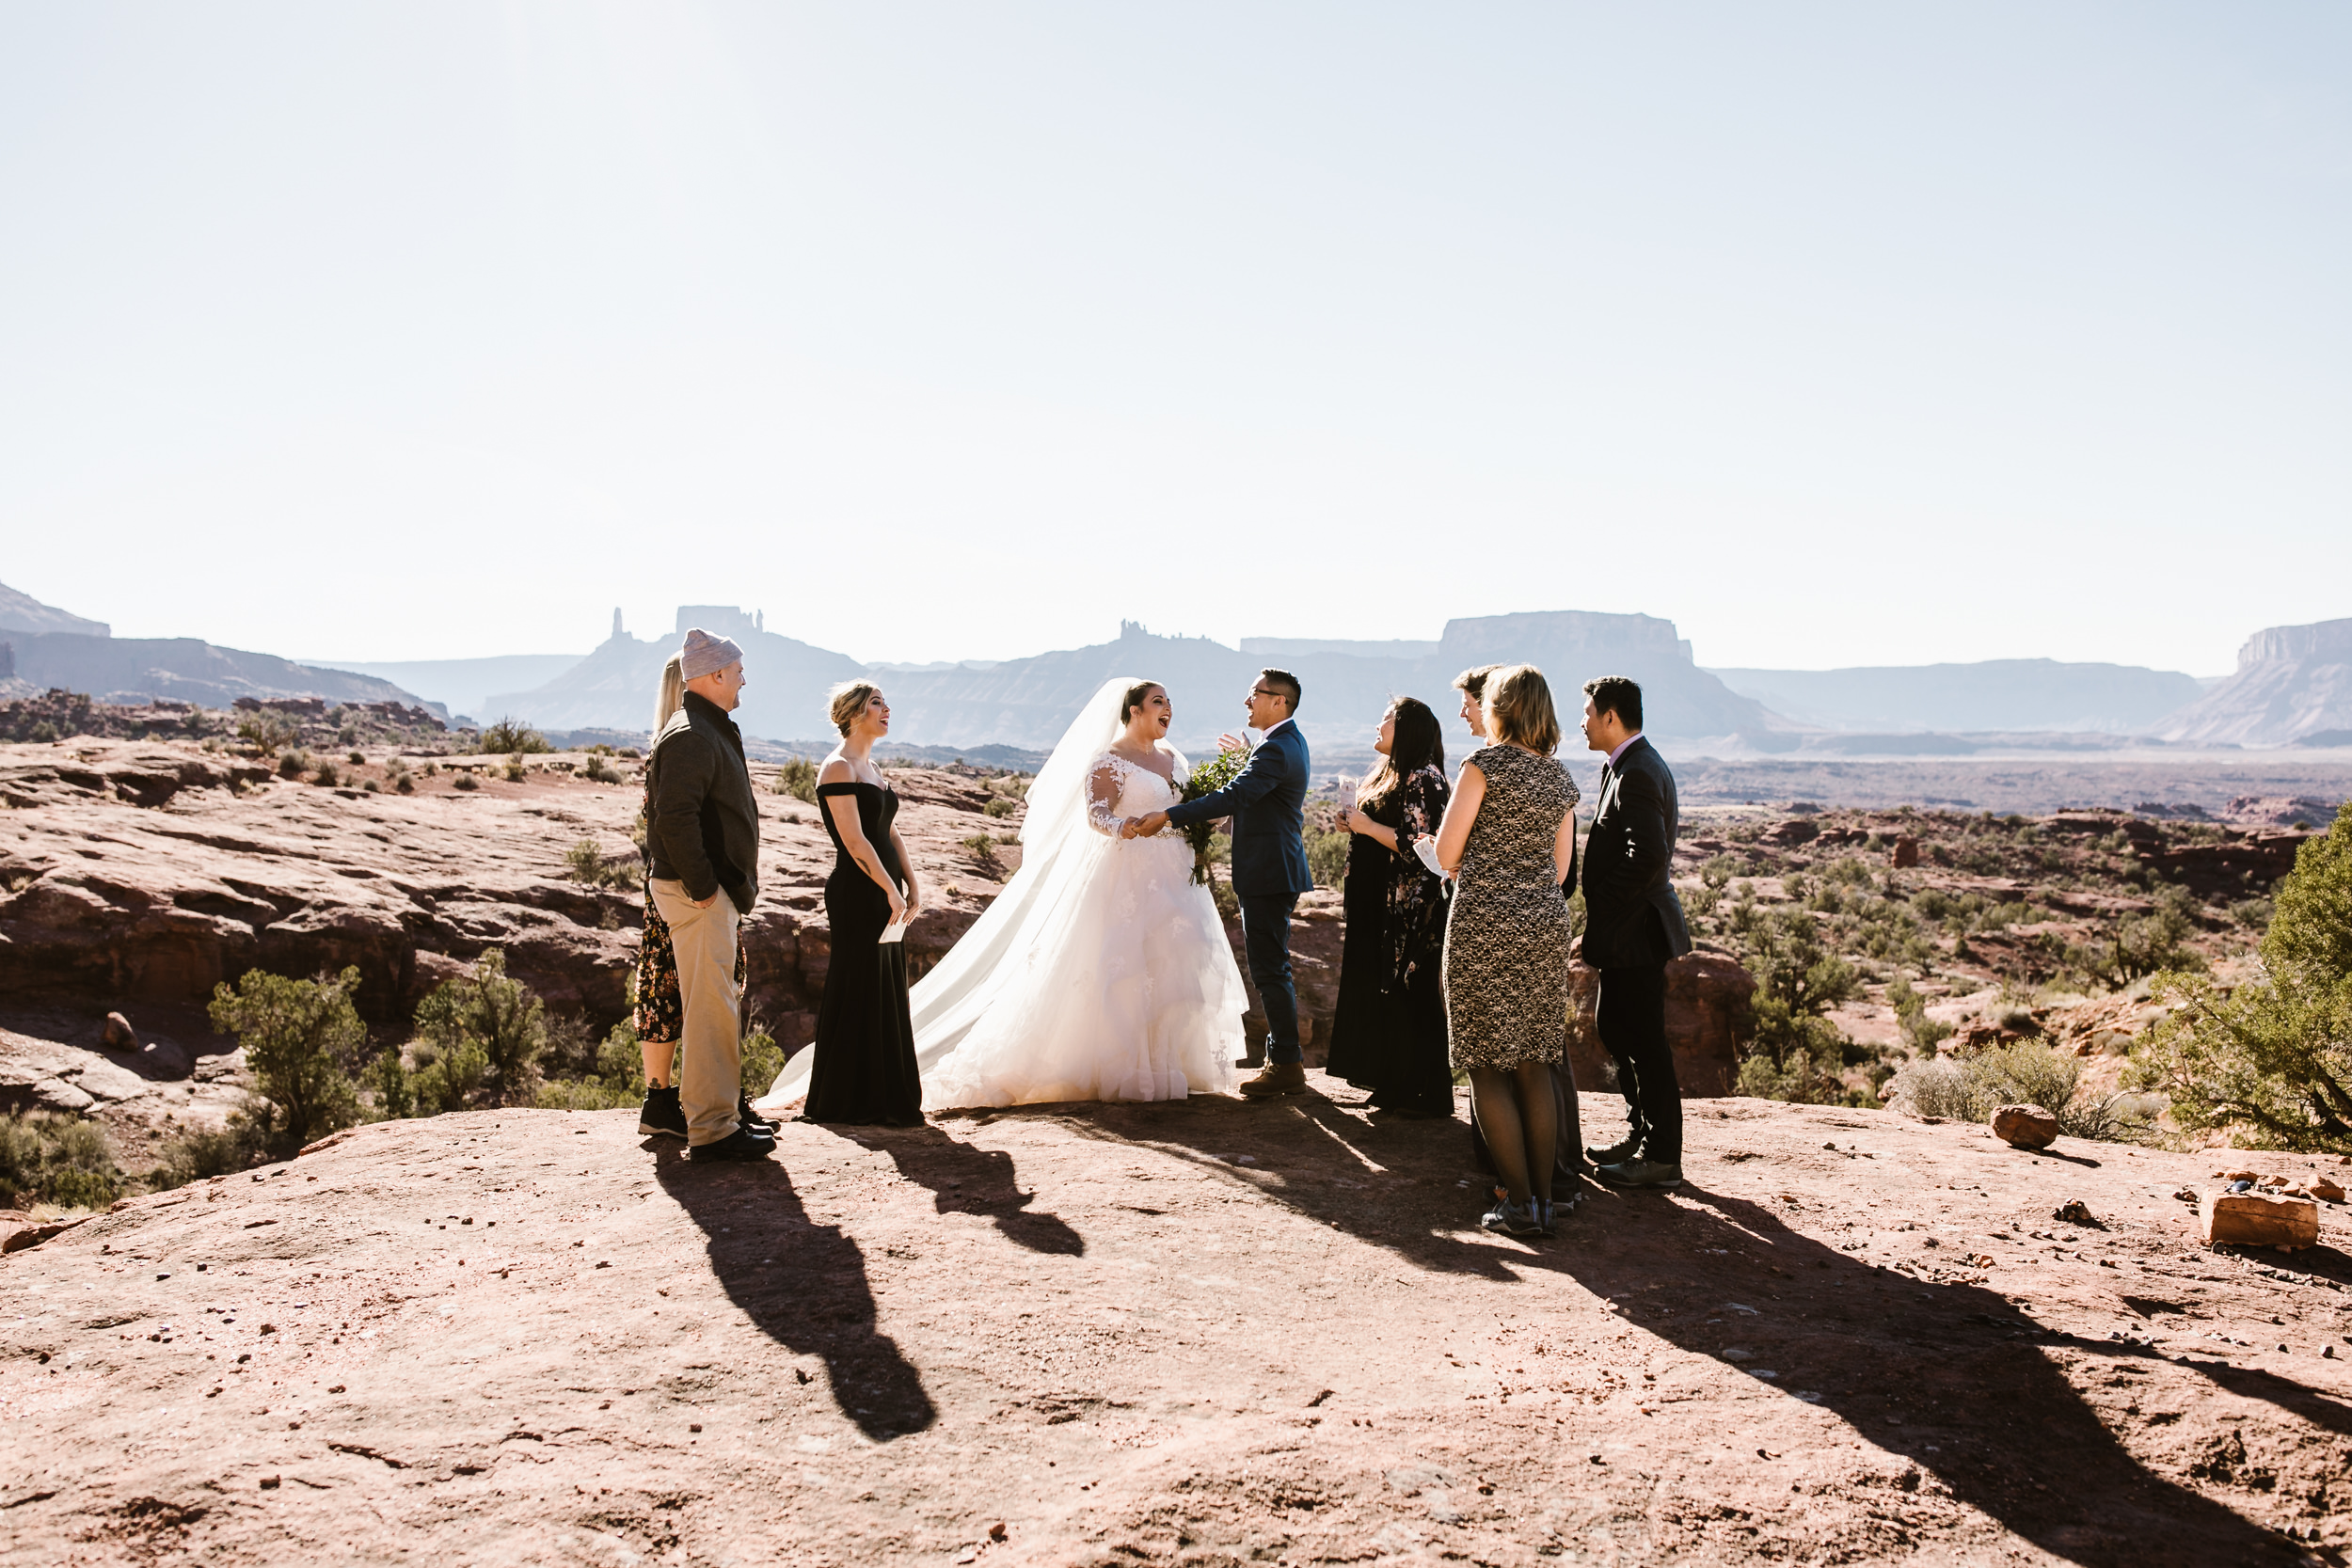 intimate family-only wedding day in moab, utah | arches national park elopement first look | ceremony in the desert | the hearnes adventure photography